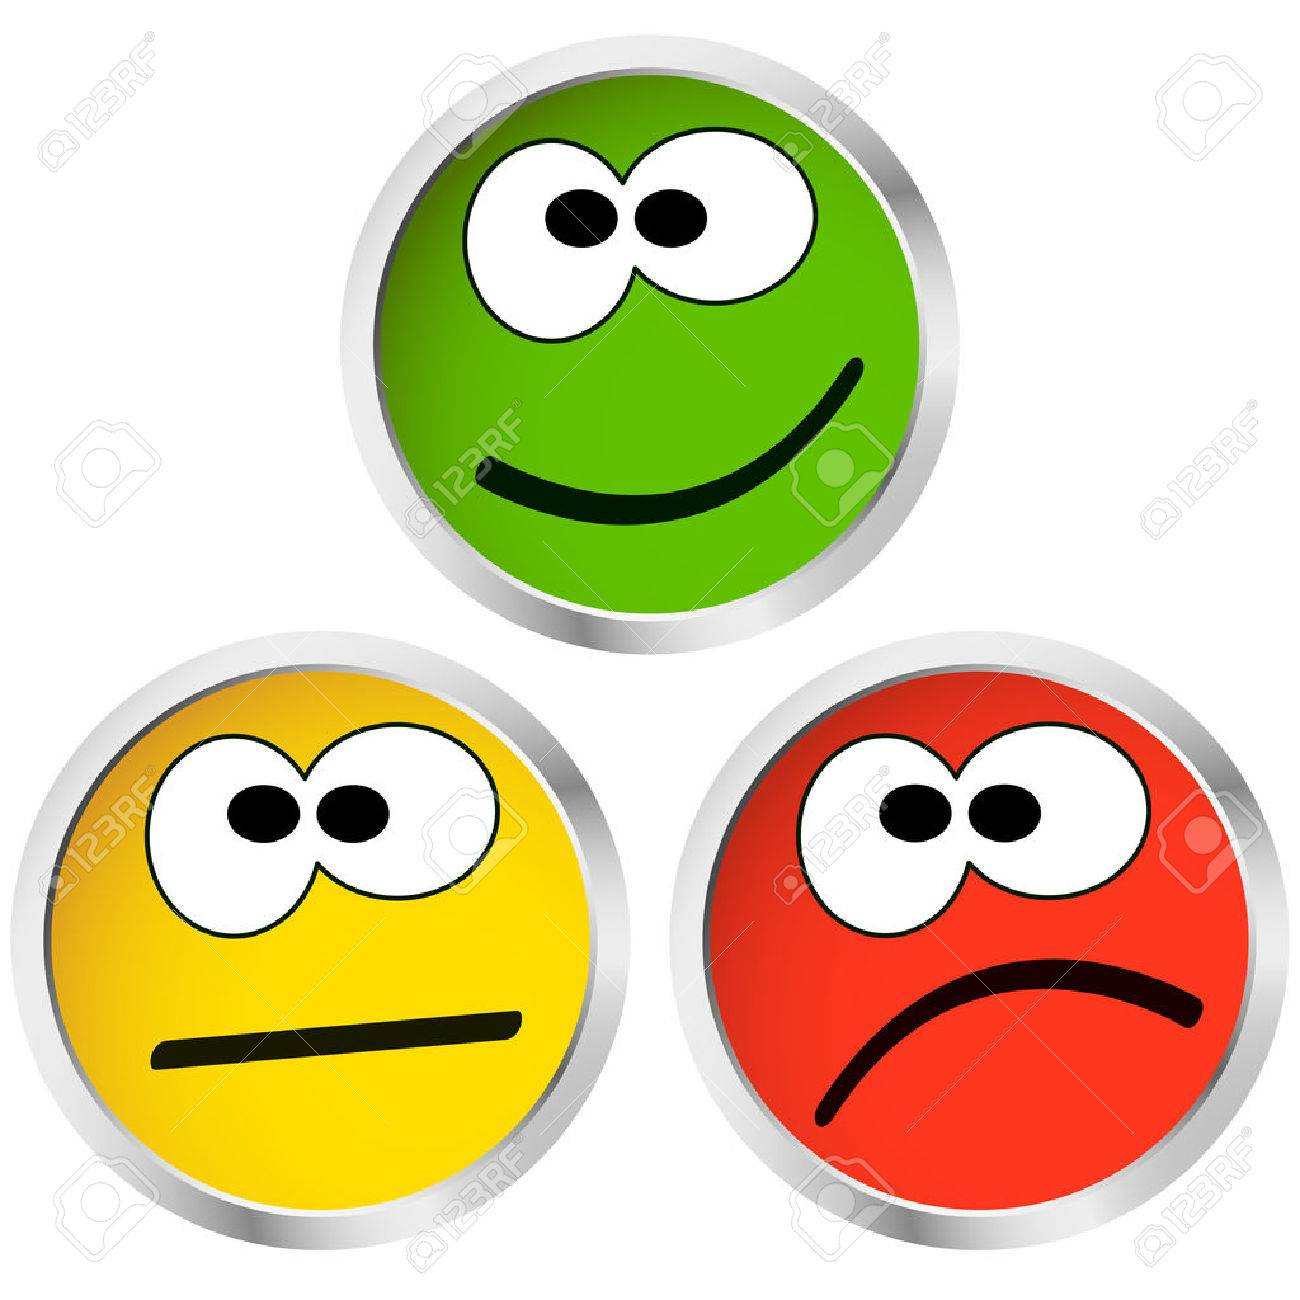 Worksheets Emotion Faces three buttons with happy neutral and sad emotion faces royalty free stock vector 47841778